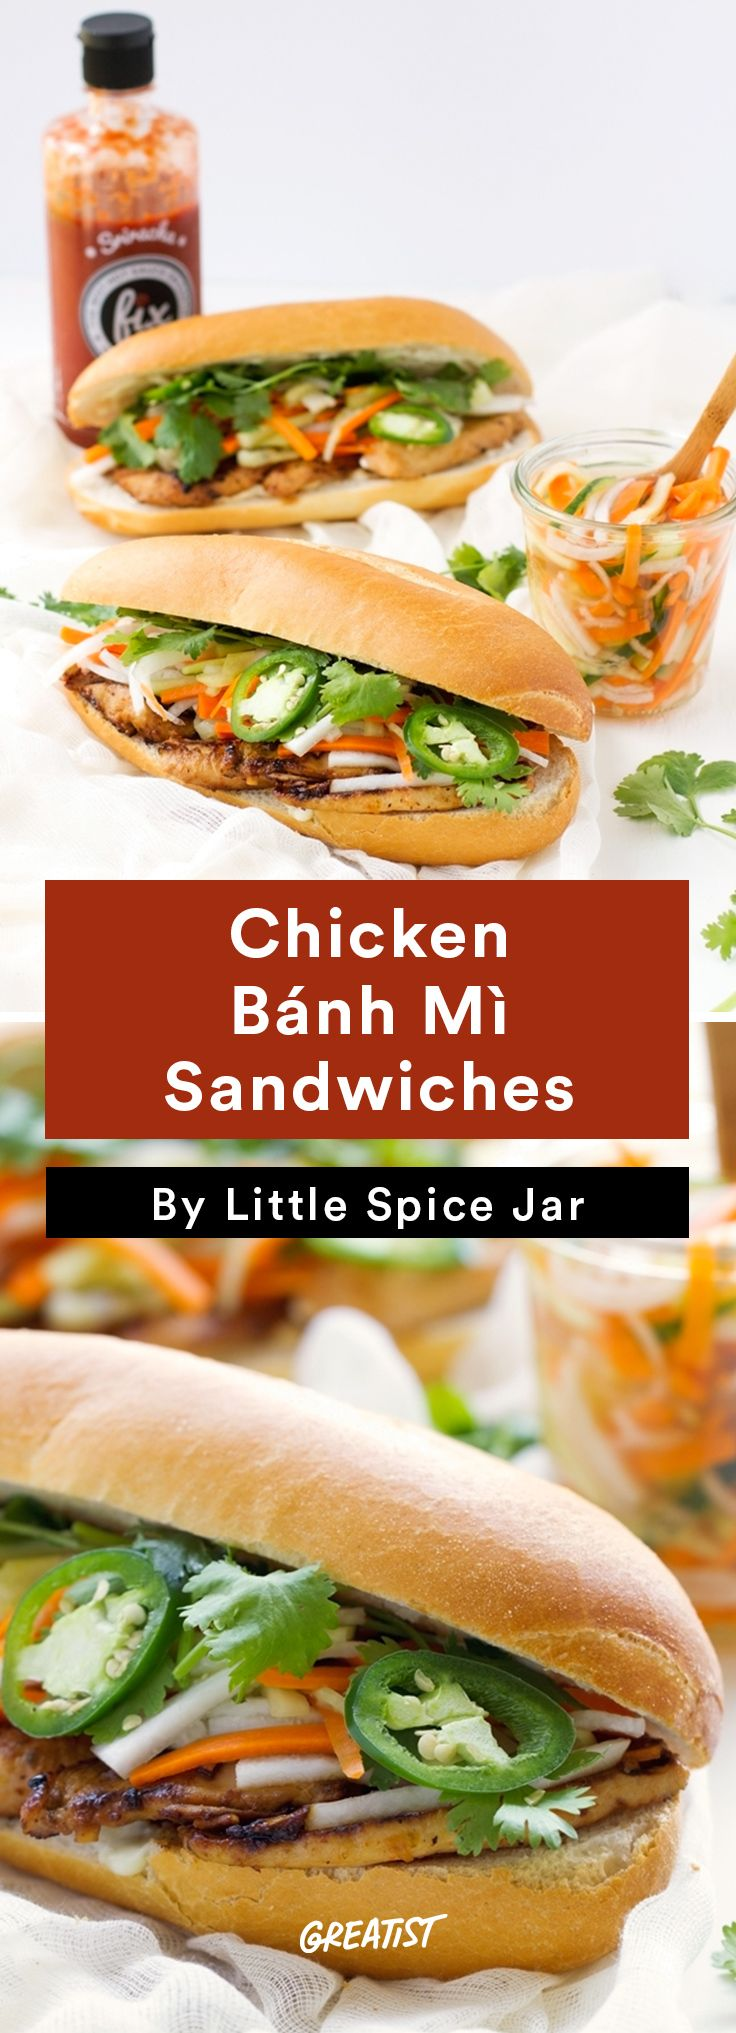 9 street food recipes for when theres no truck in sight comfort chicken bnh m sandwiches healthy homemade streetfood httpgreatisteatstreet food recipes to make at home forumfinder Gallery